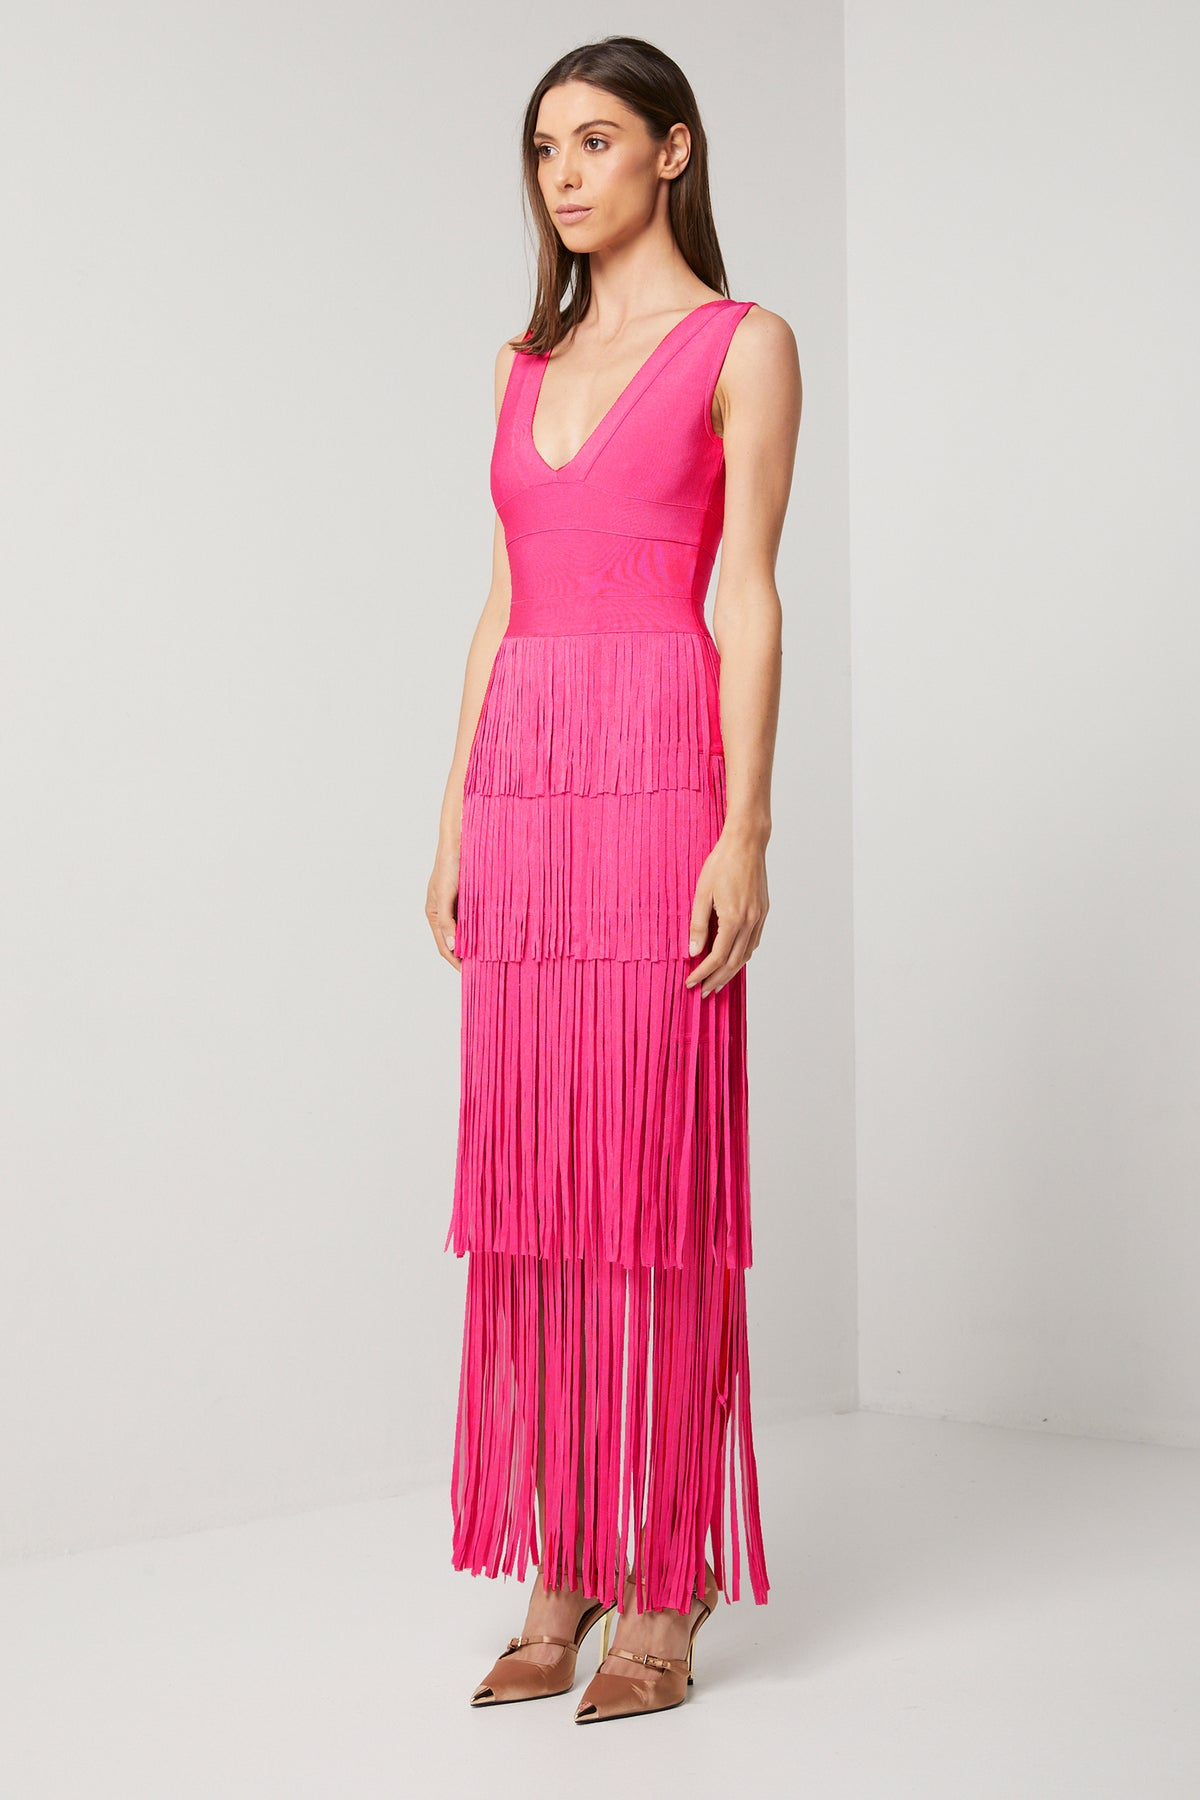 DIMENSION FRINGE DRESS